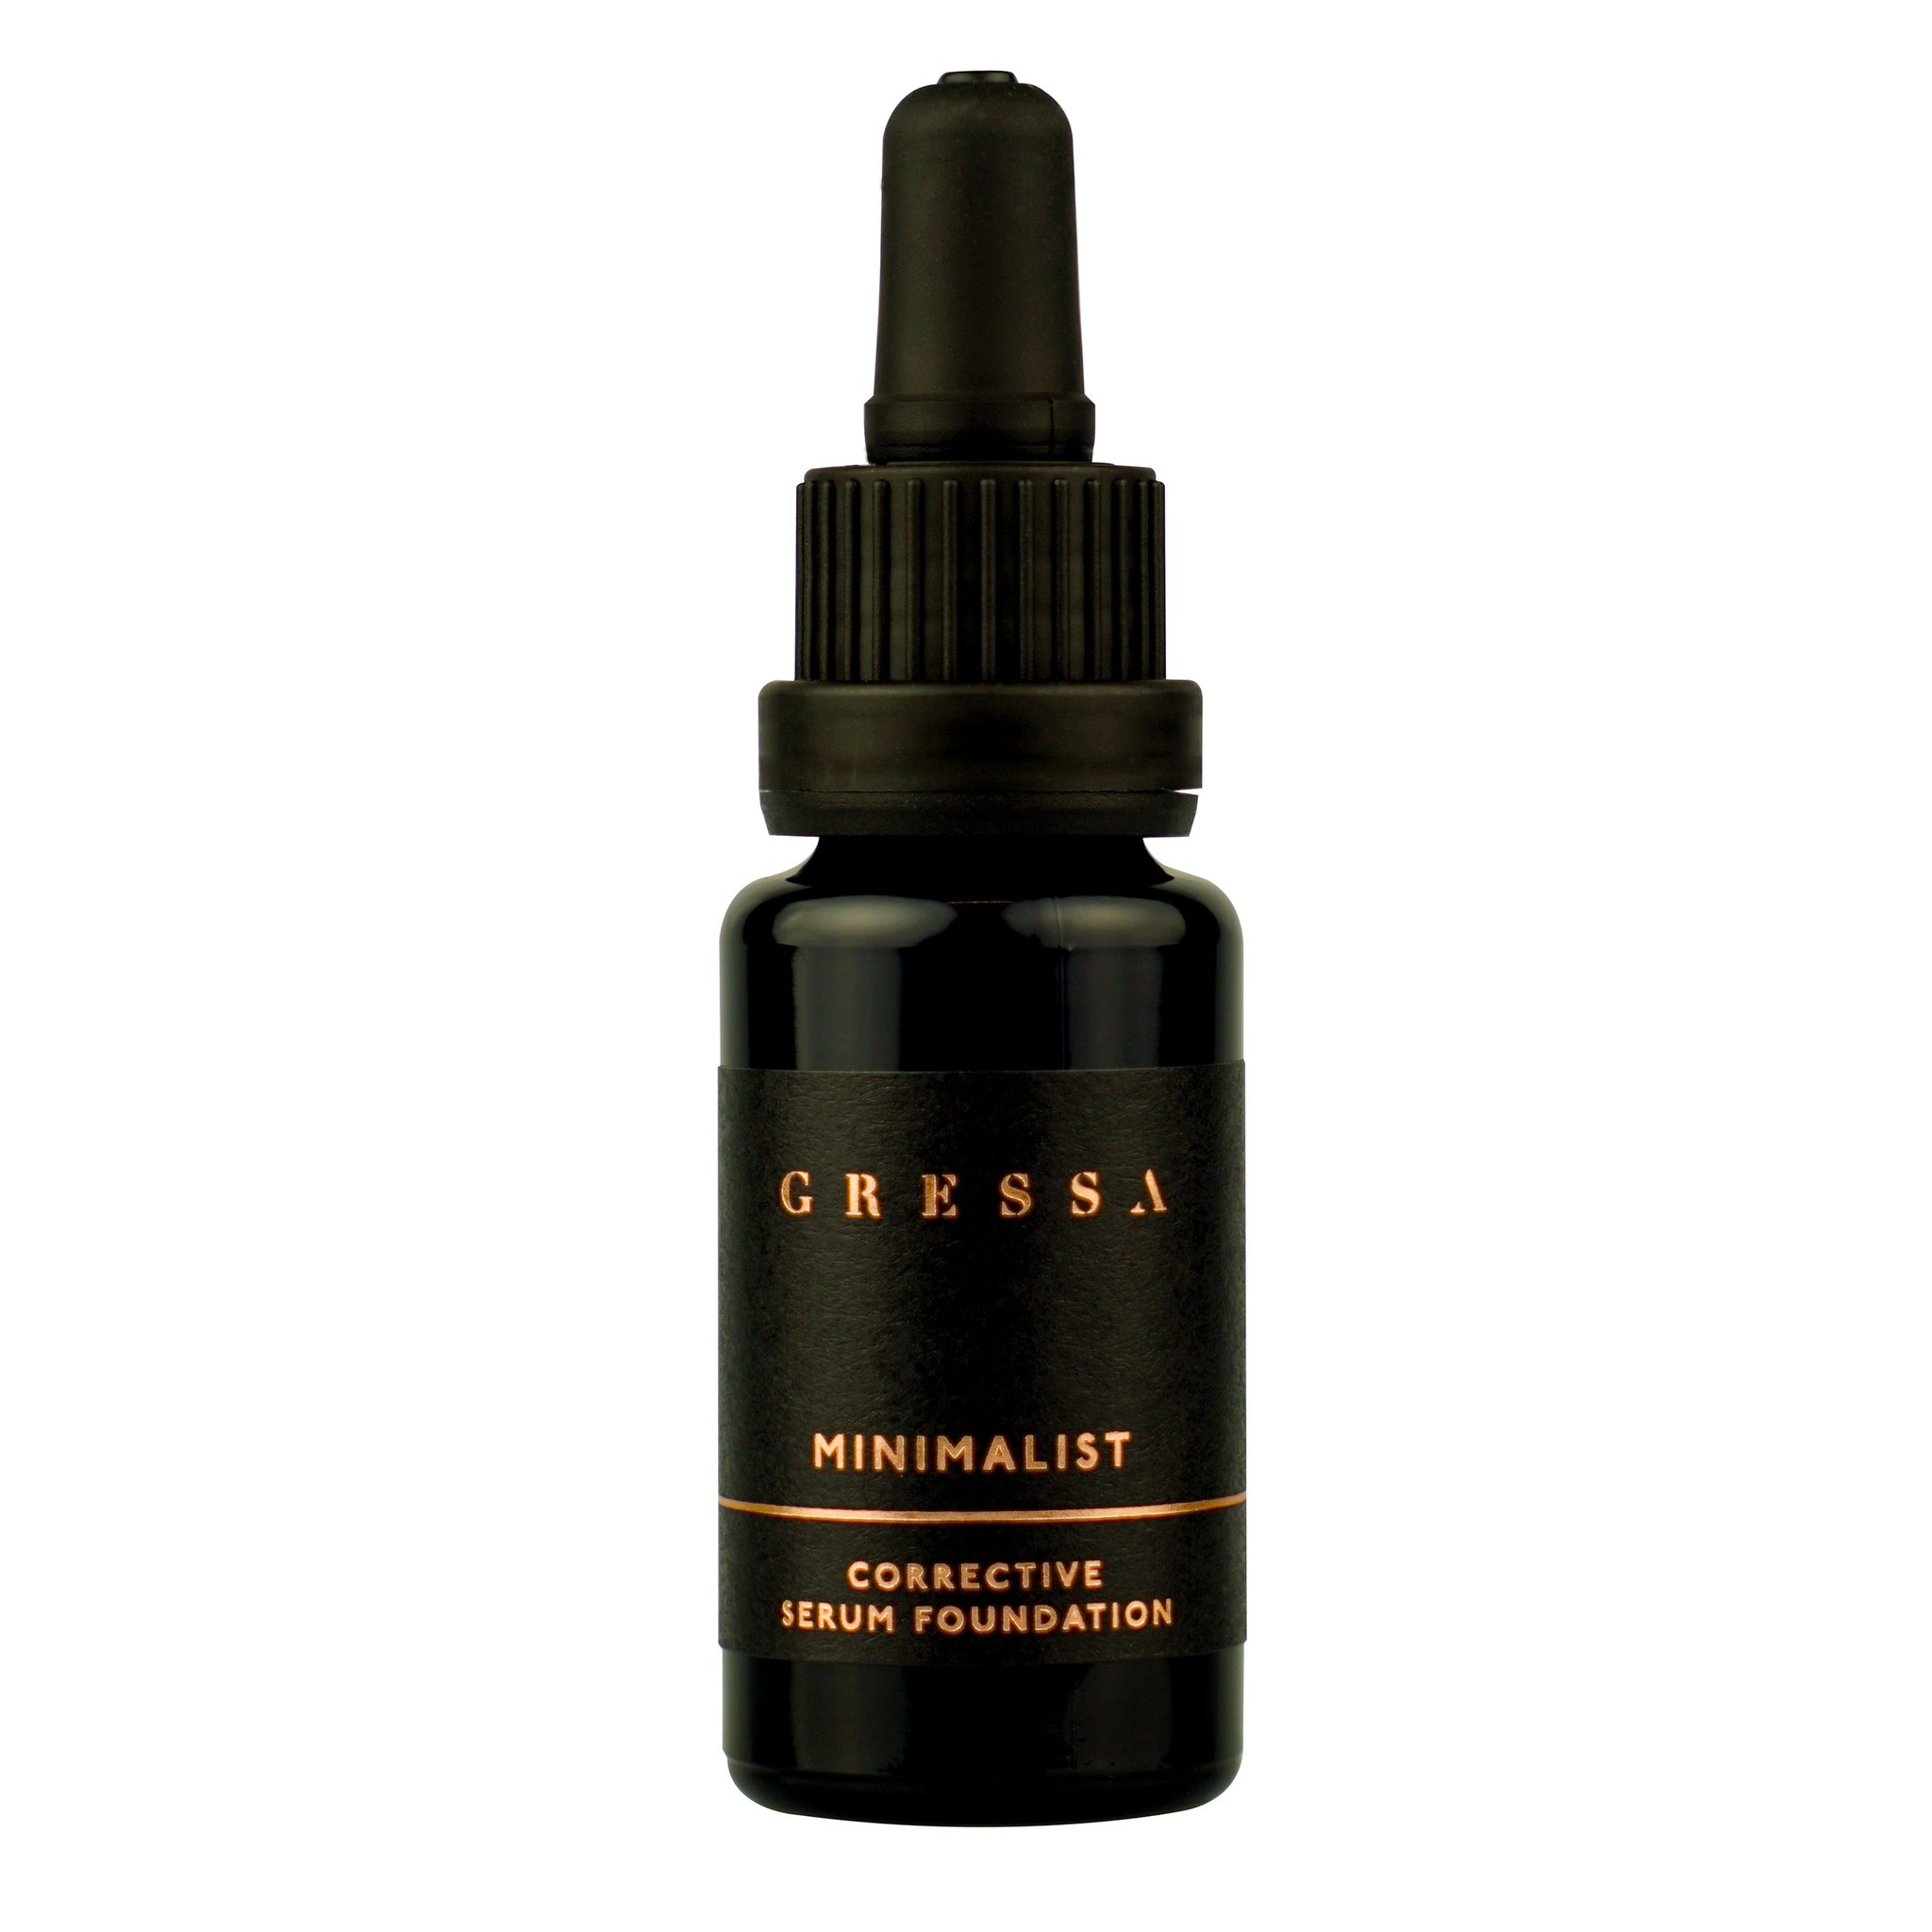 GRESSA MINIMALIST  SERUM FOUNDATION